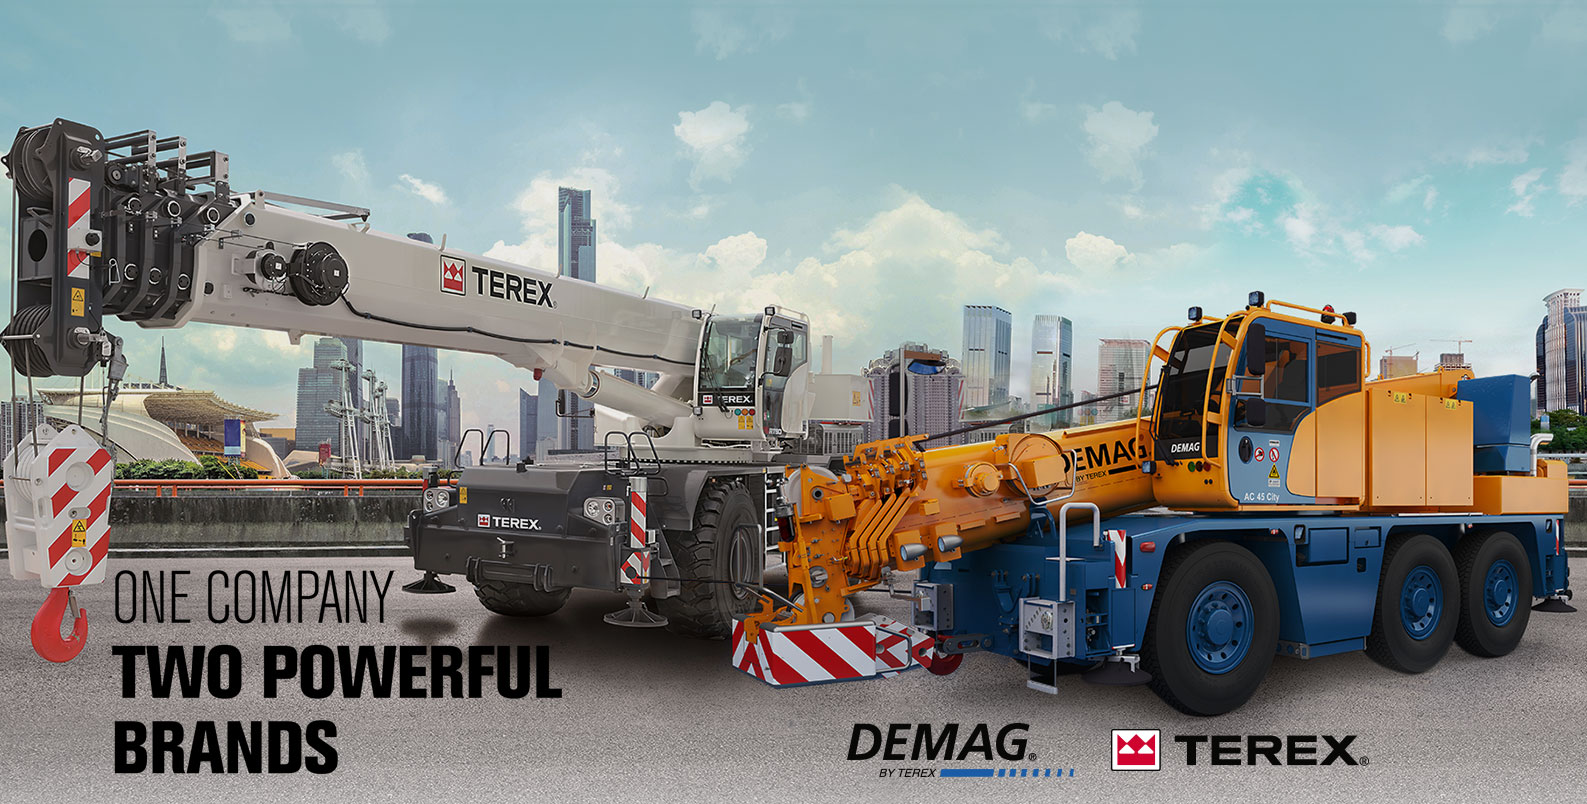 One Company Two Powerful Brands - TEREX | DEMAG